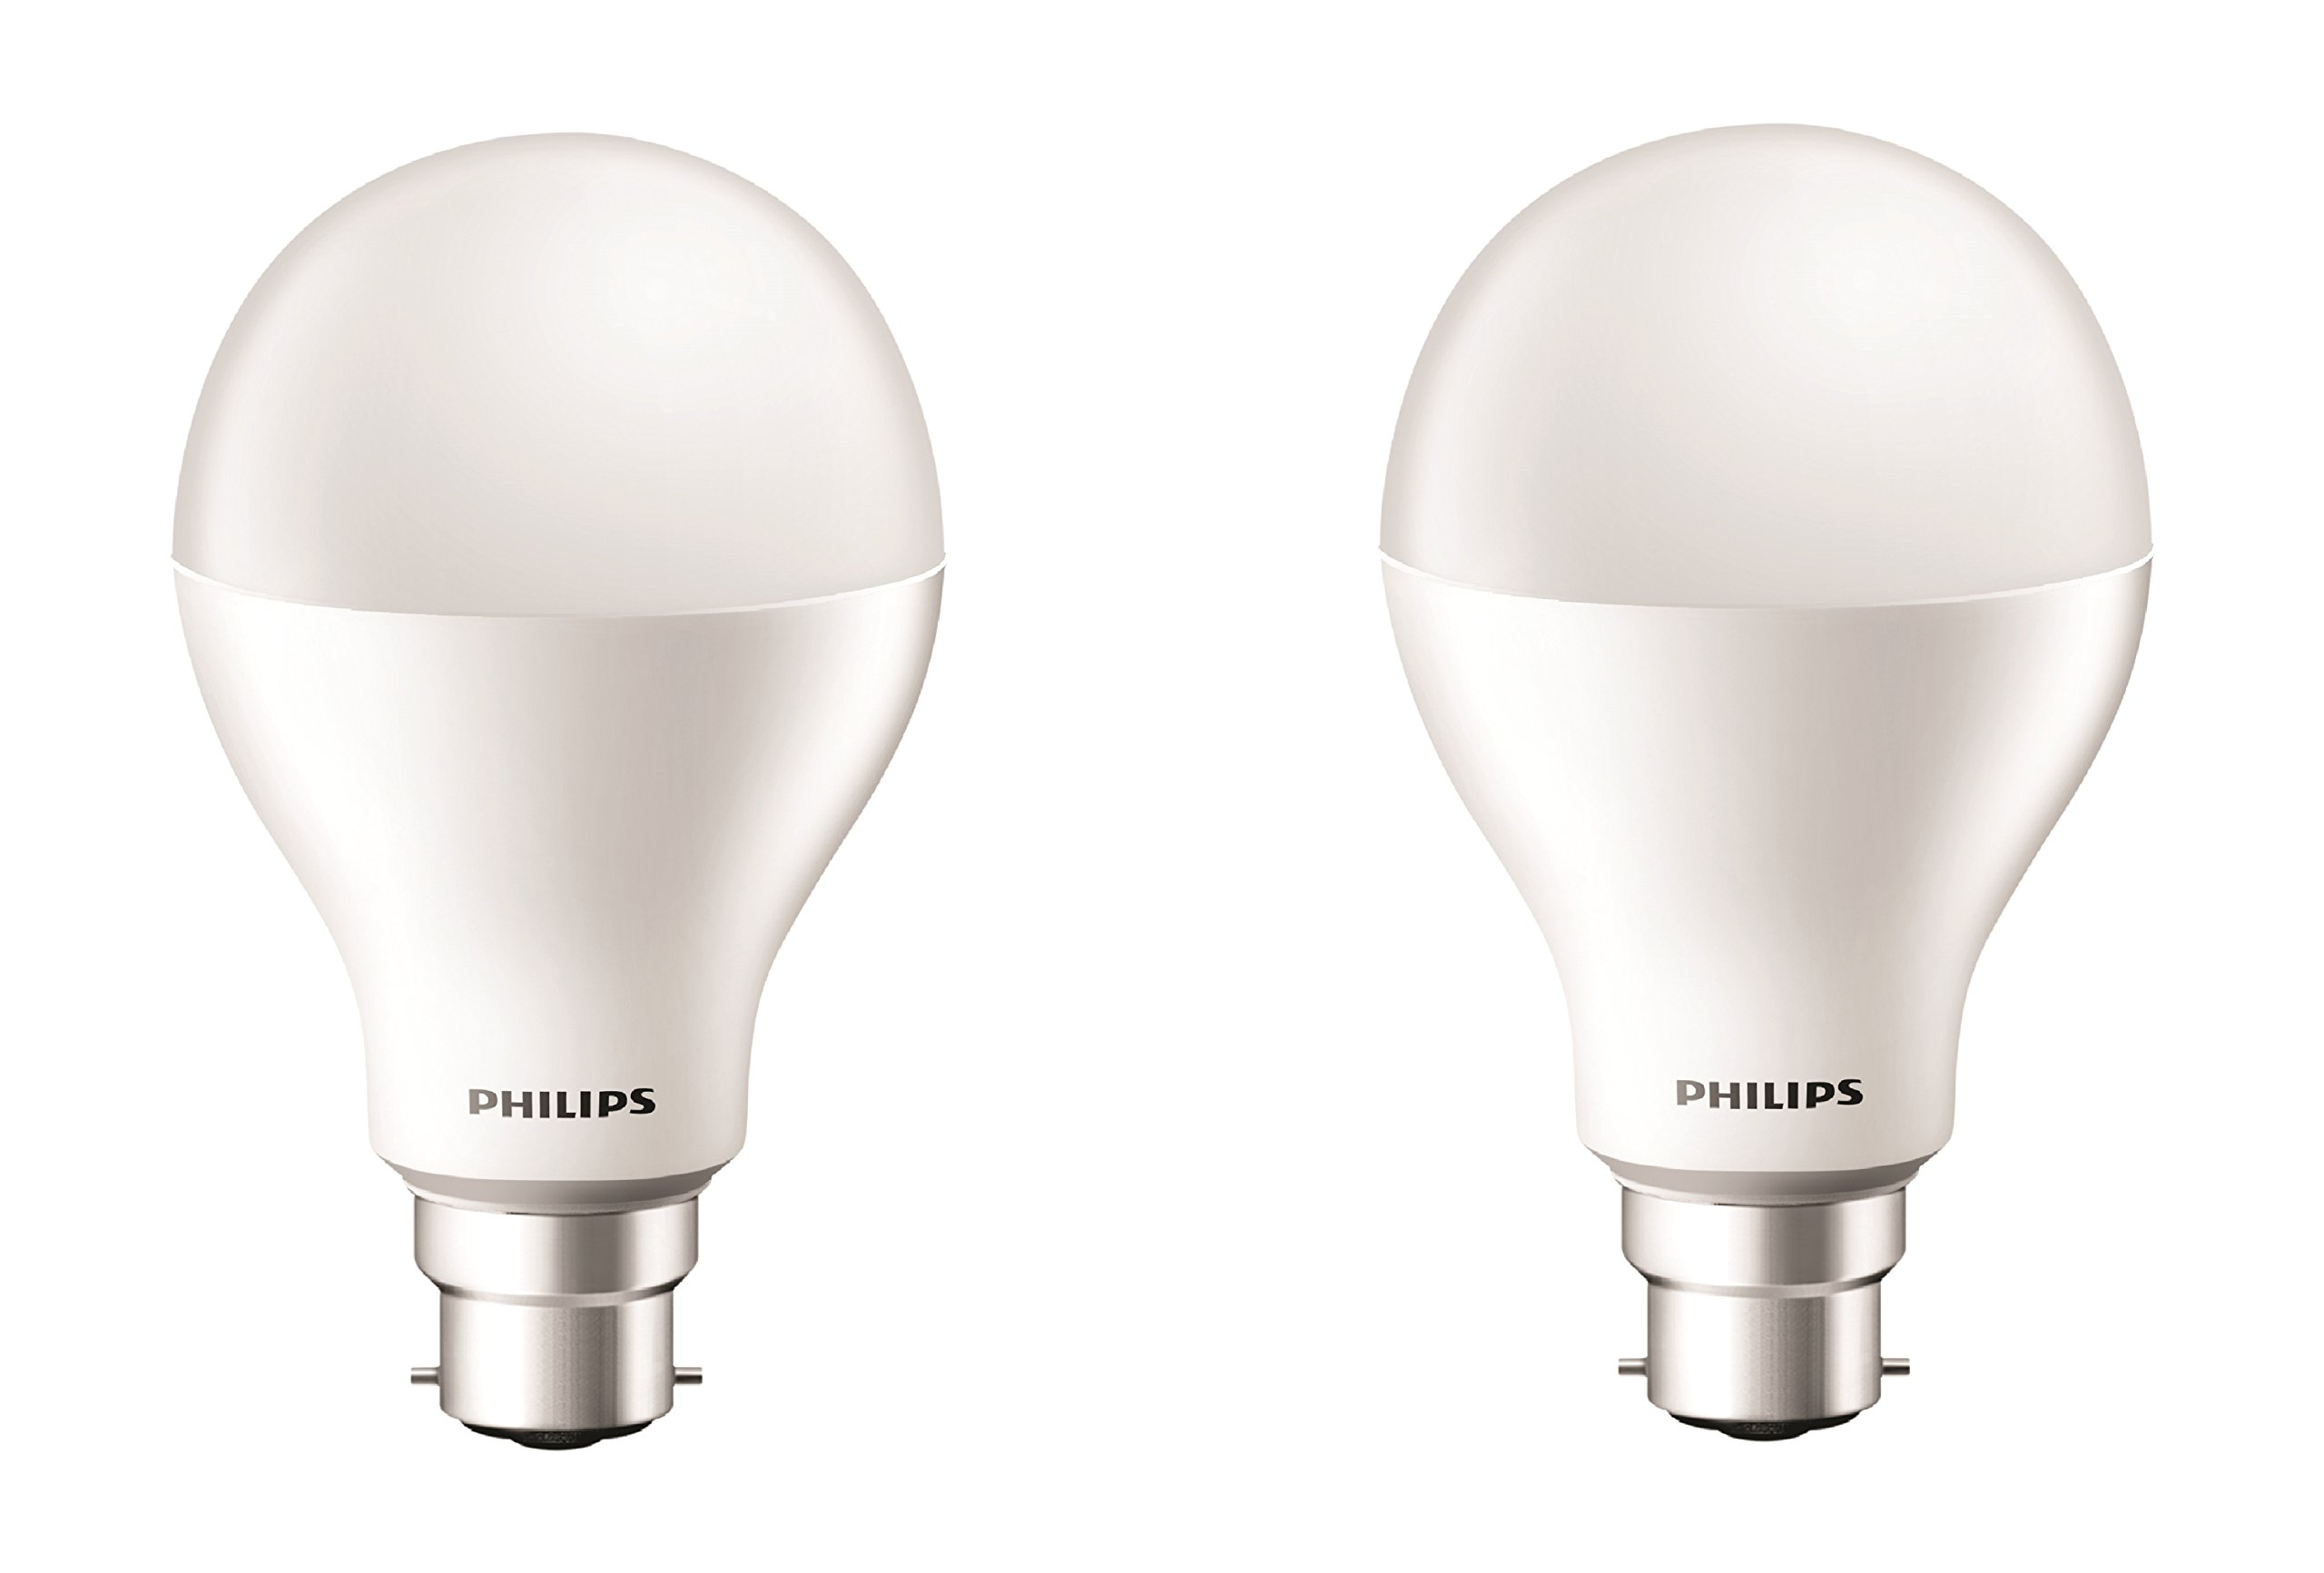 Philips led light bulb coupons